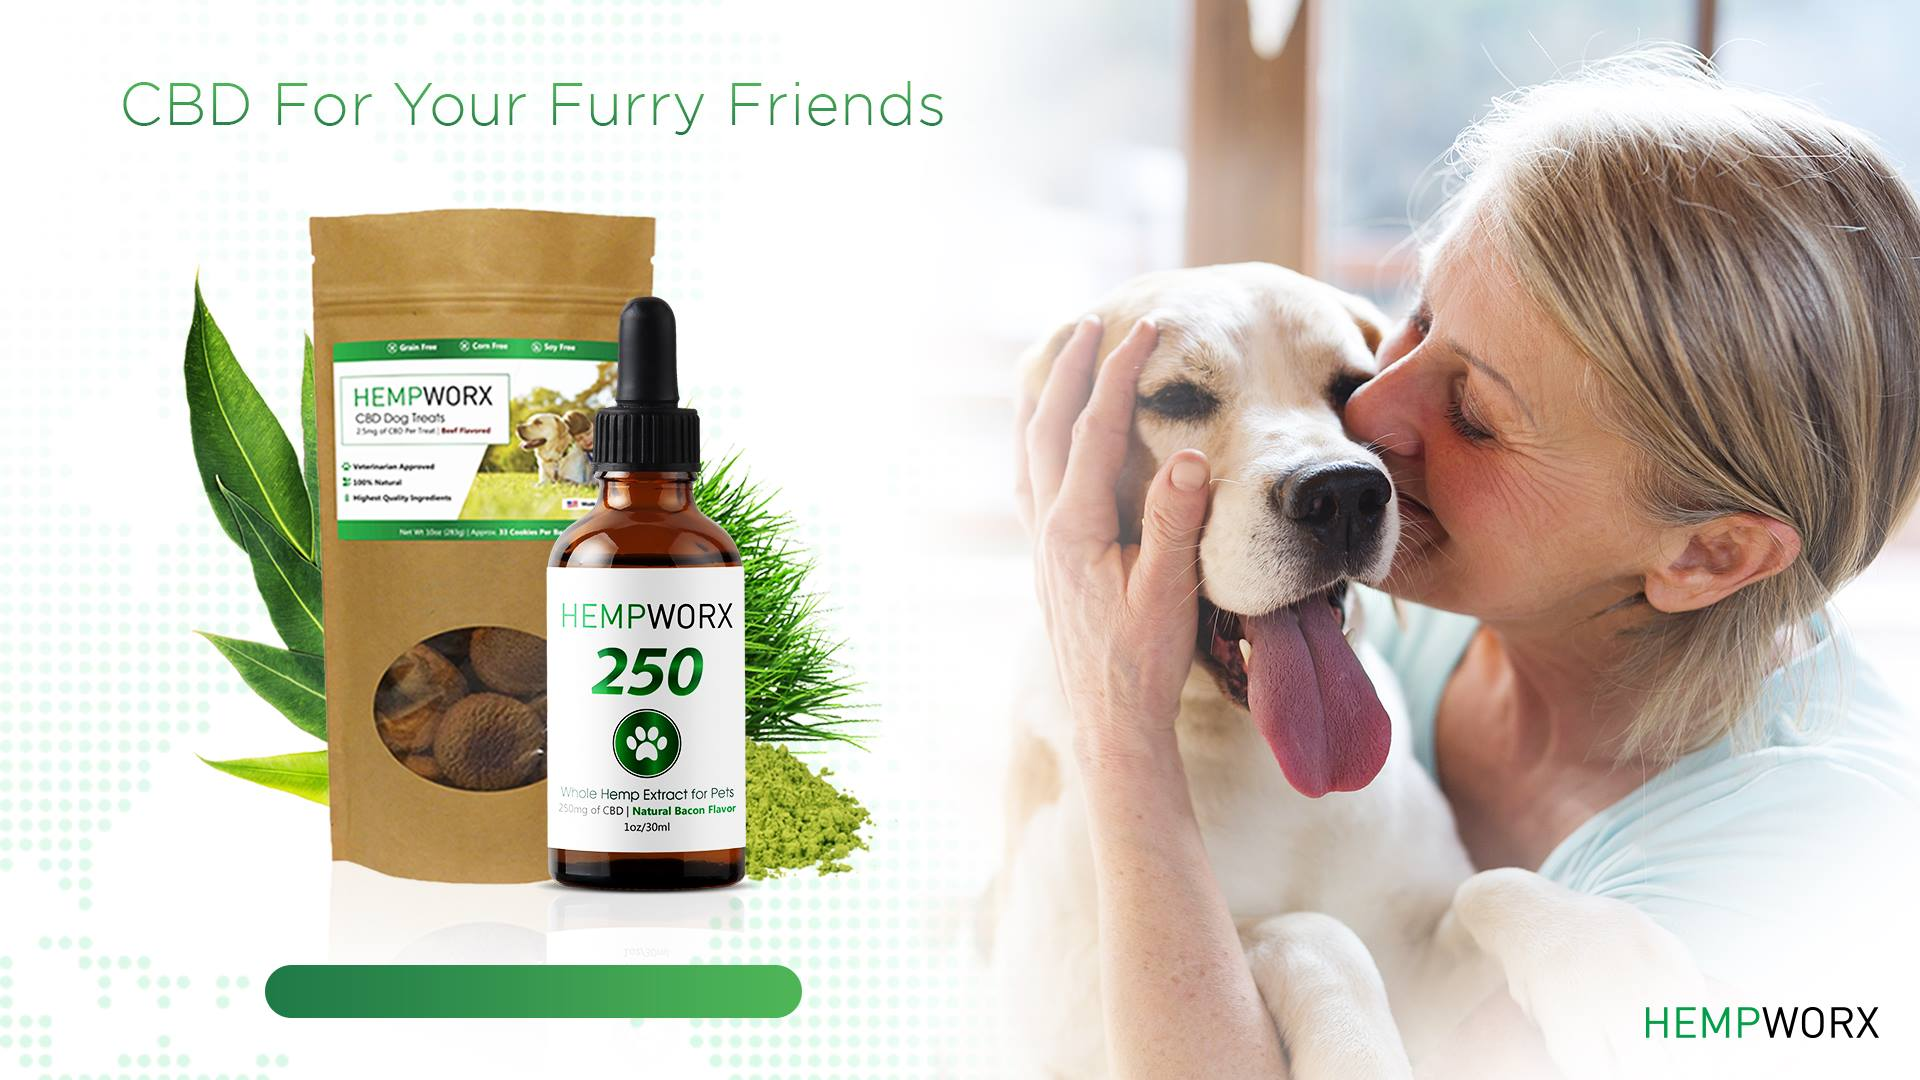 Hempworx CBD for pets